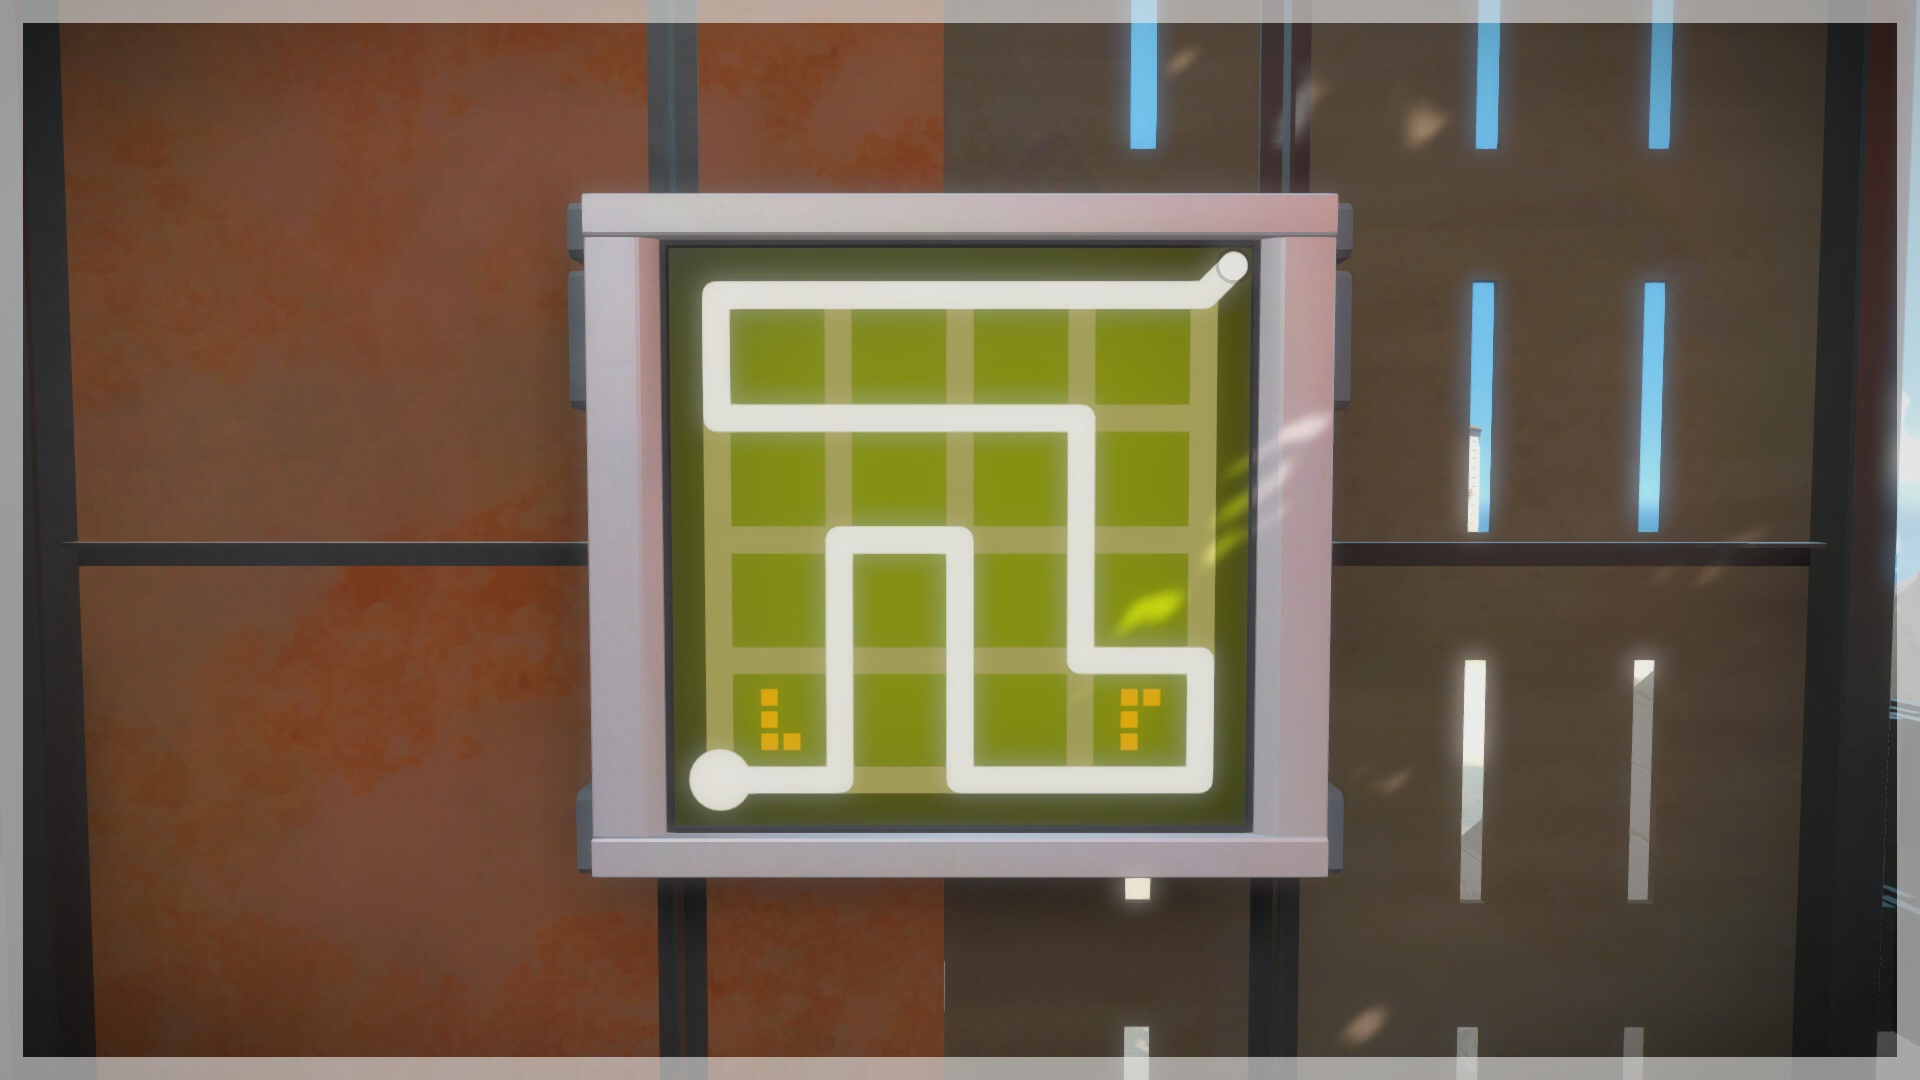 The Witness - The Quarry Puzzle Solution | USgamer